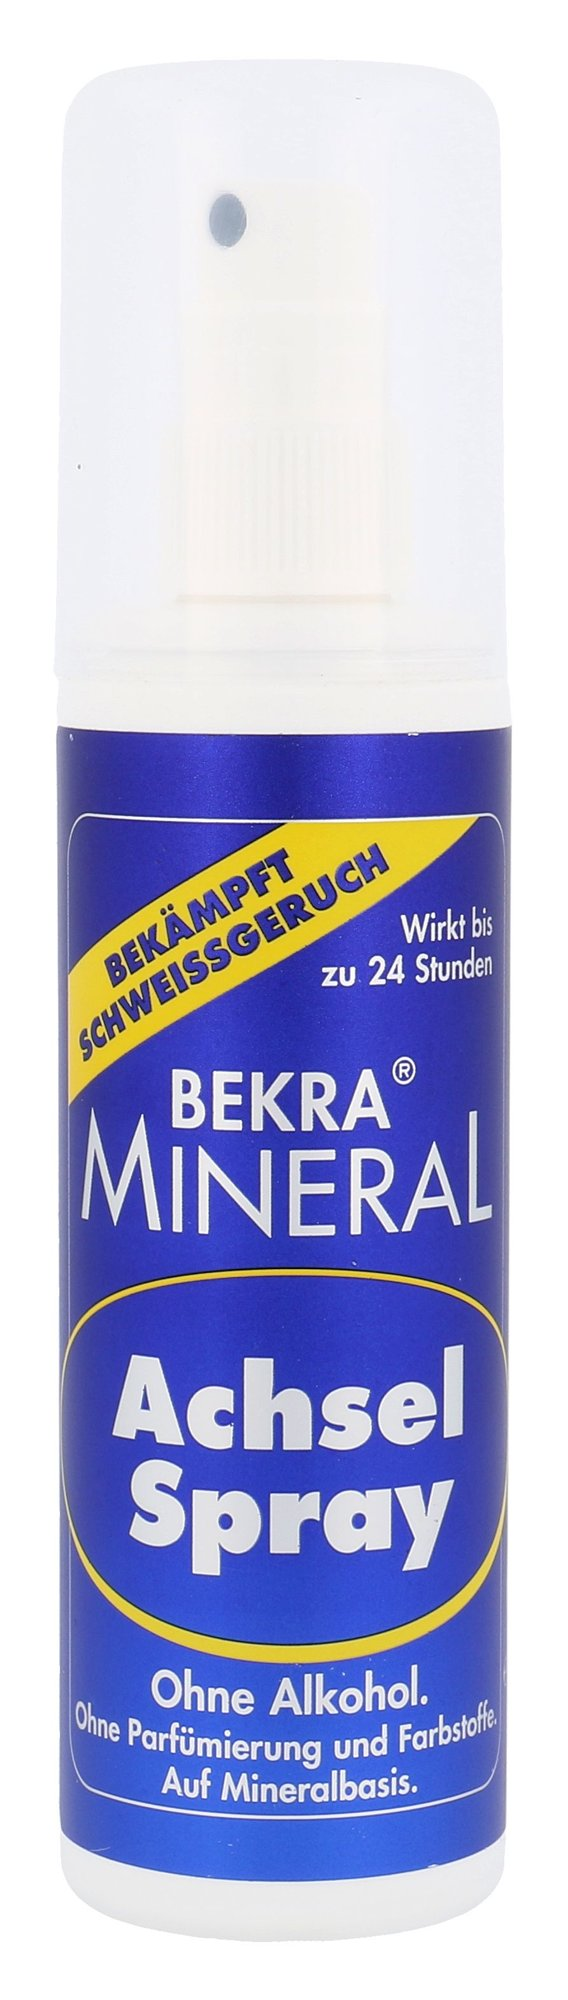 Bekra Mineral Underarm Spray Cosmetic 100ml